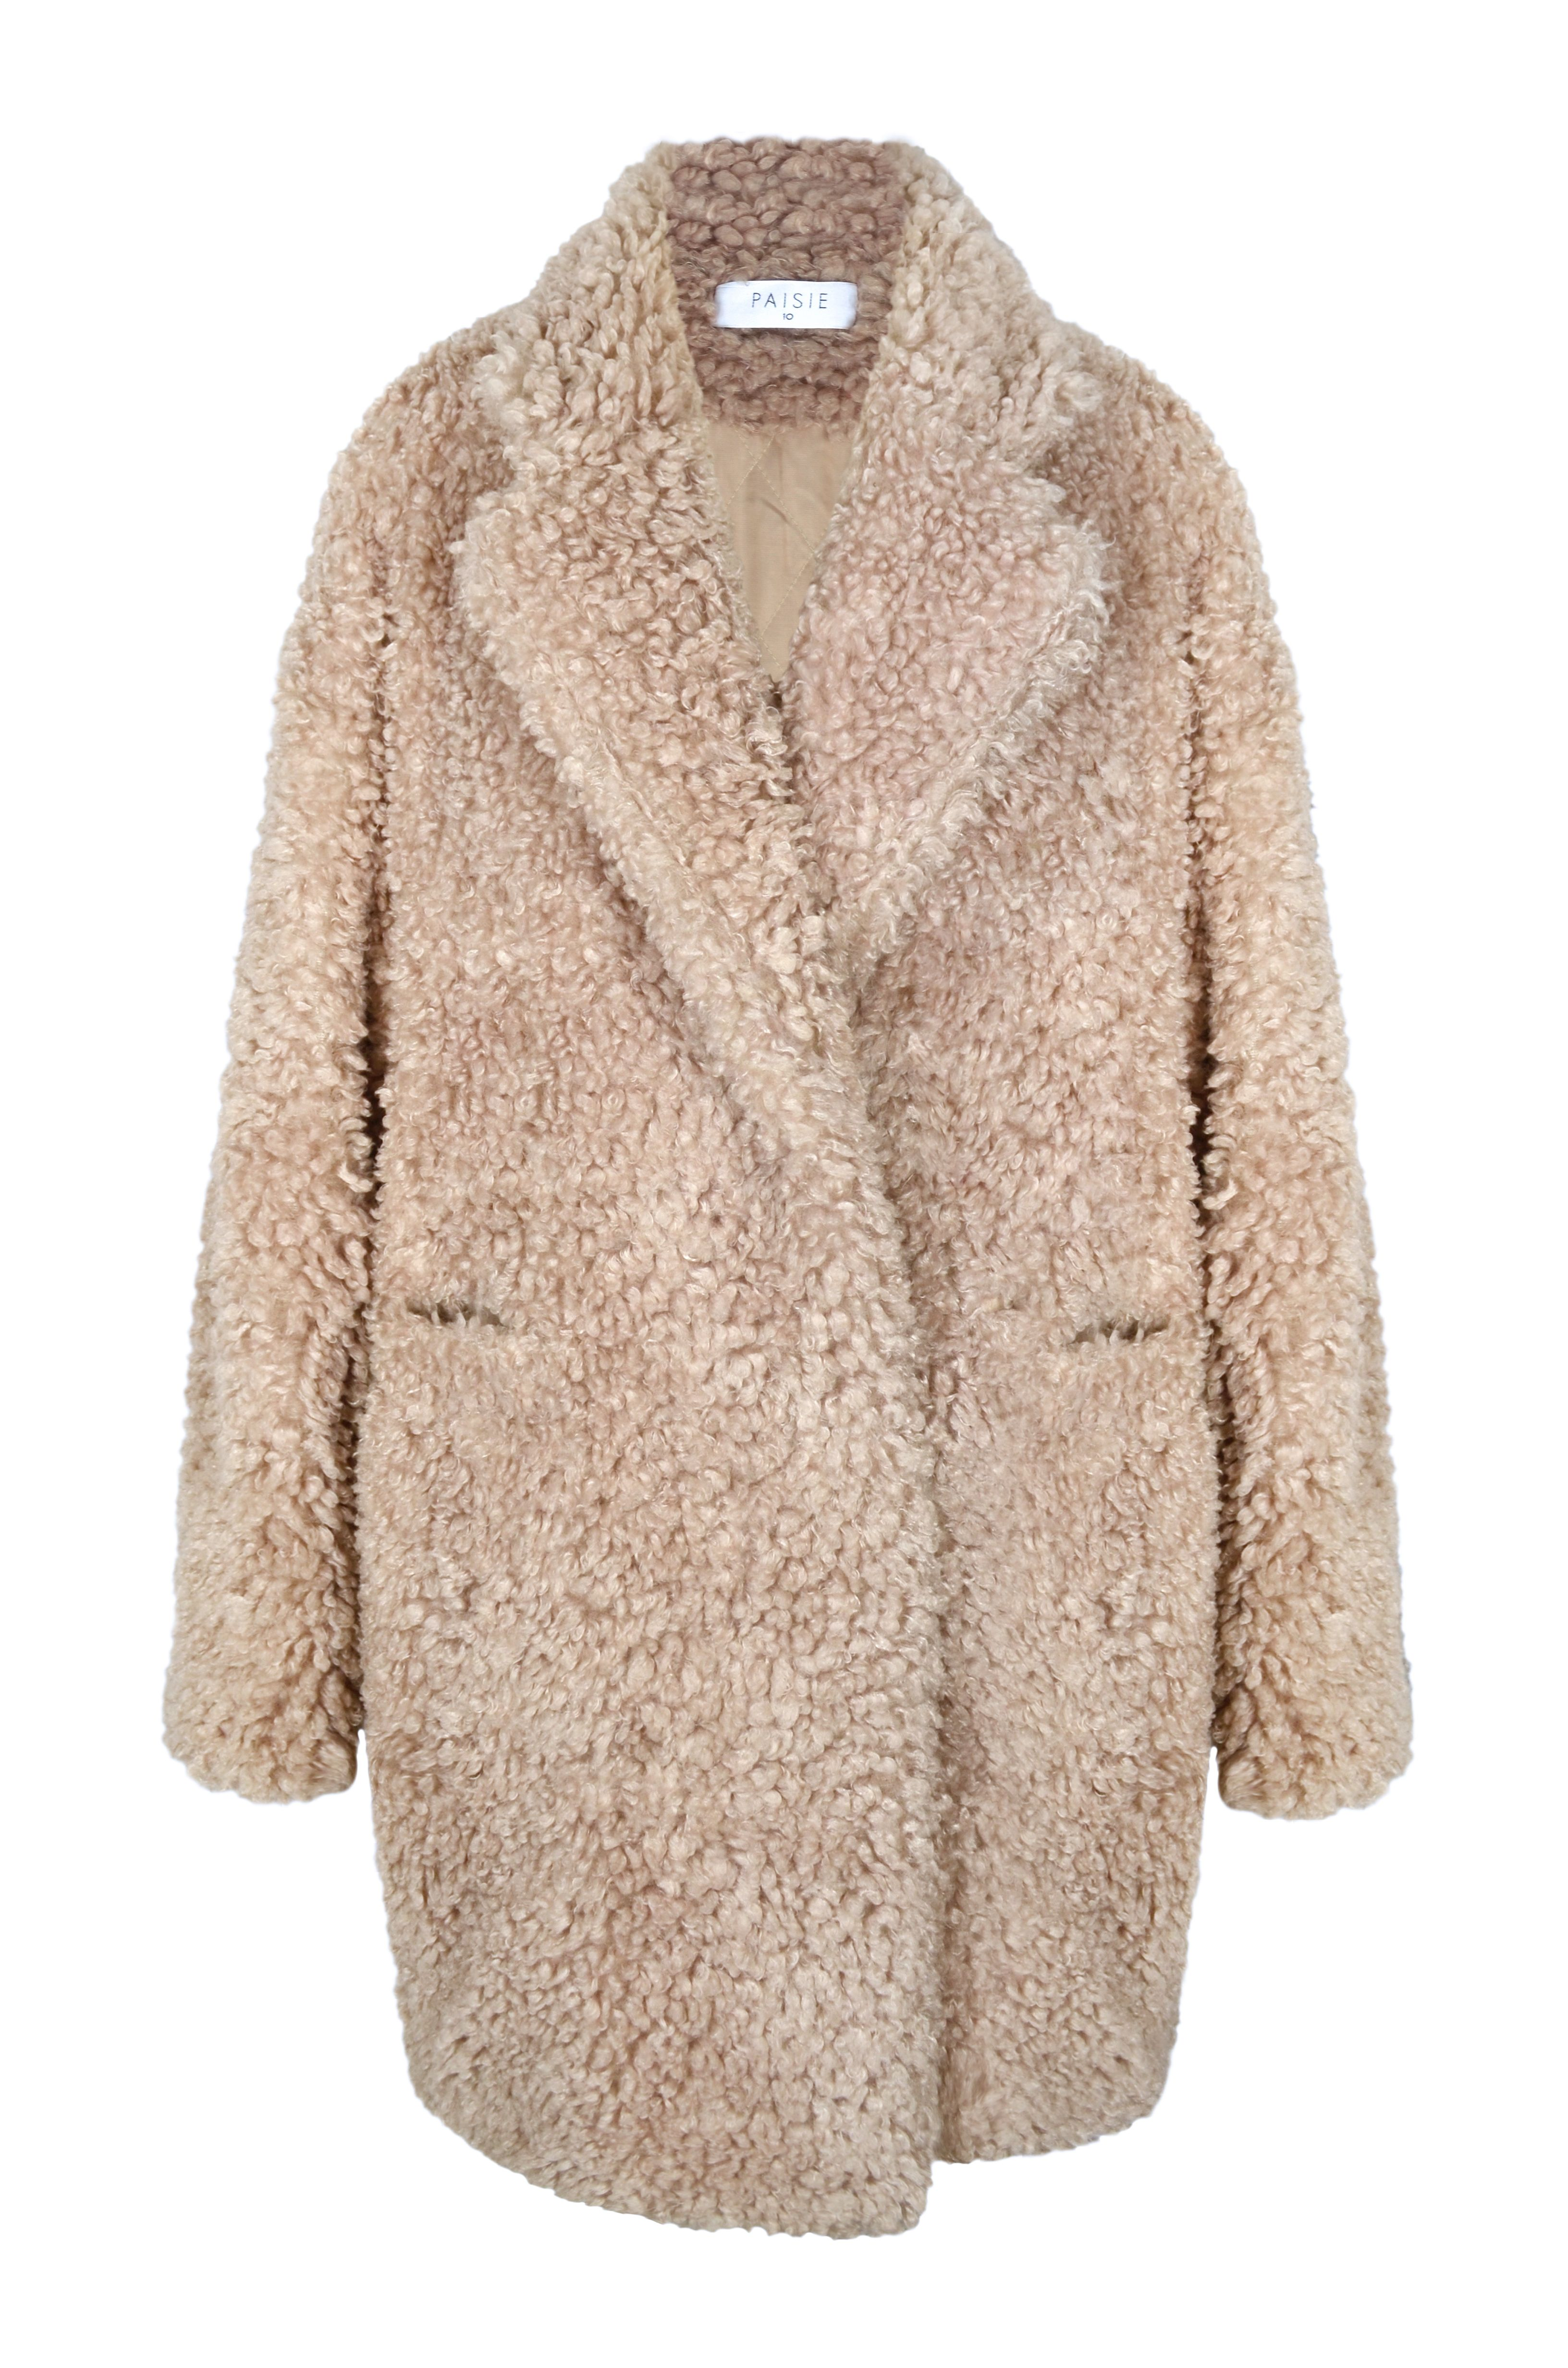 Feel cozy in style this winter in this Paisie double breasted faux fur coat. Designed with a wool blend collar stand, the coat features front pockets and is perfect for everyday wear.